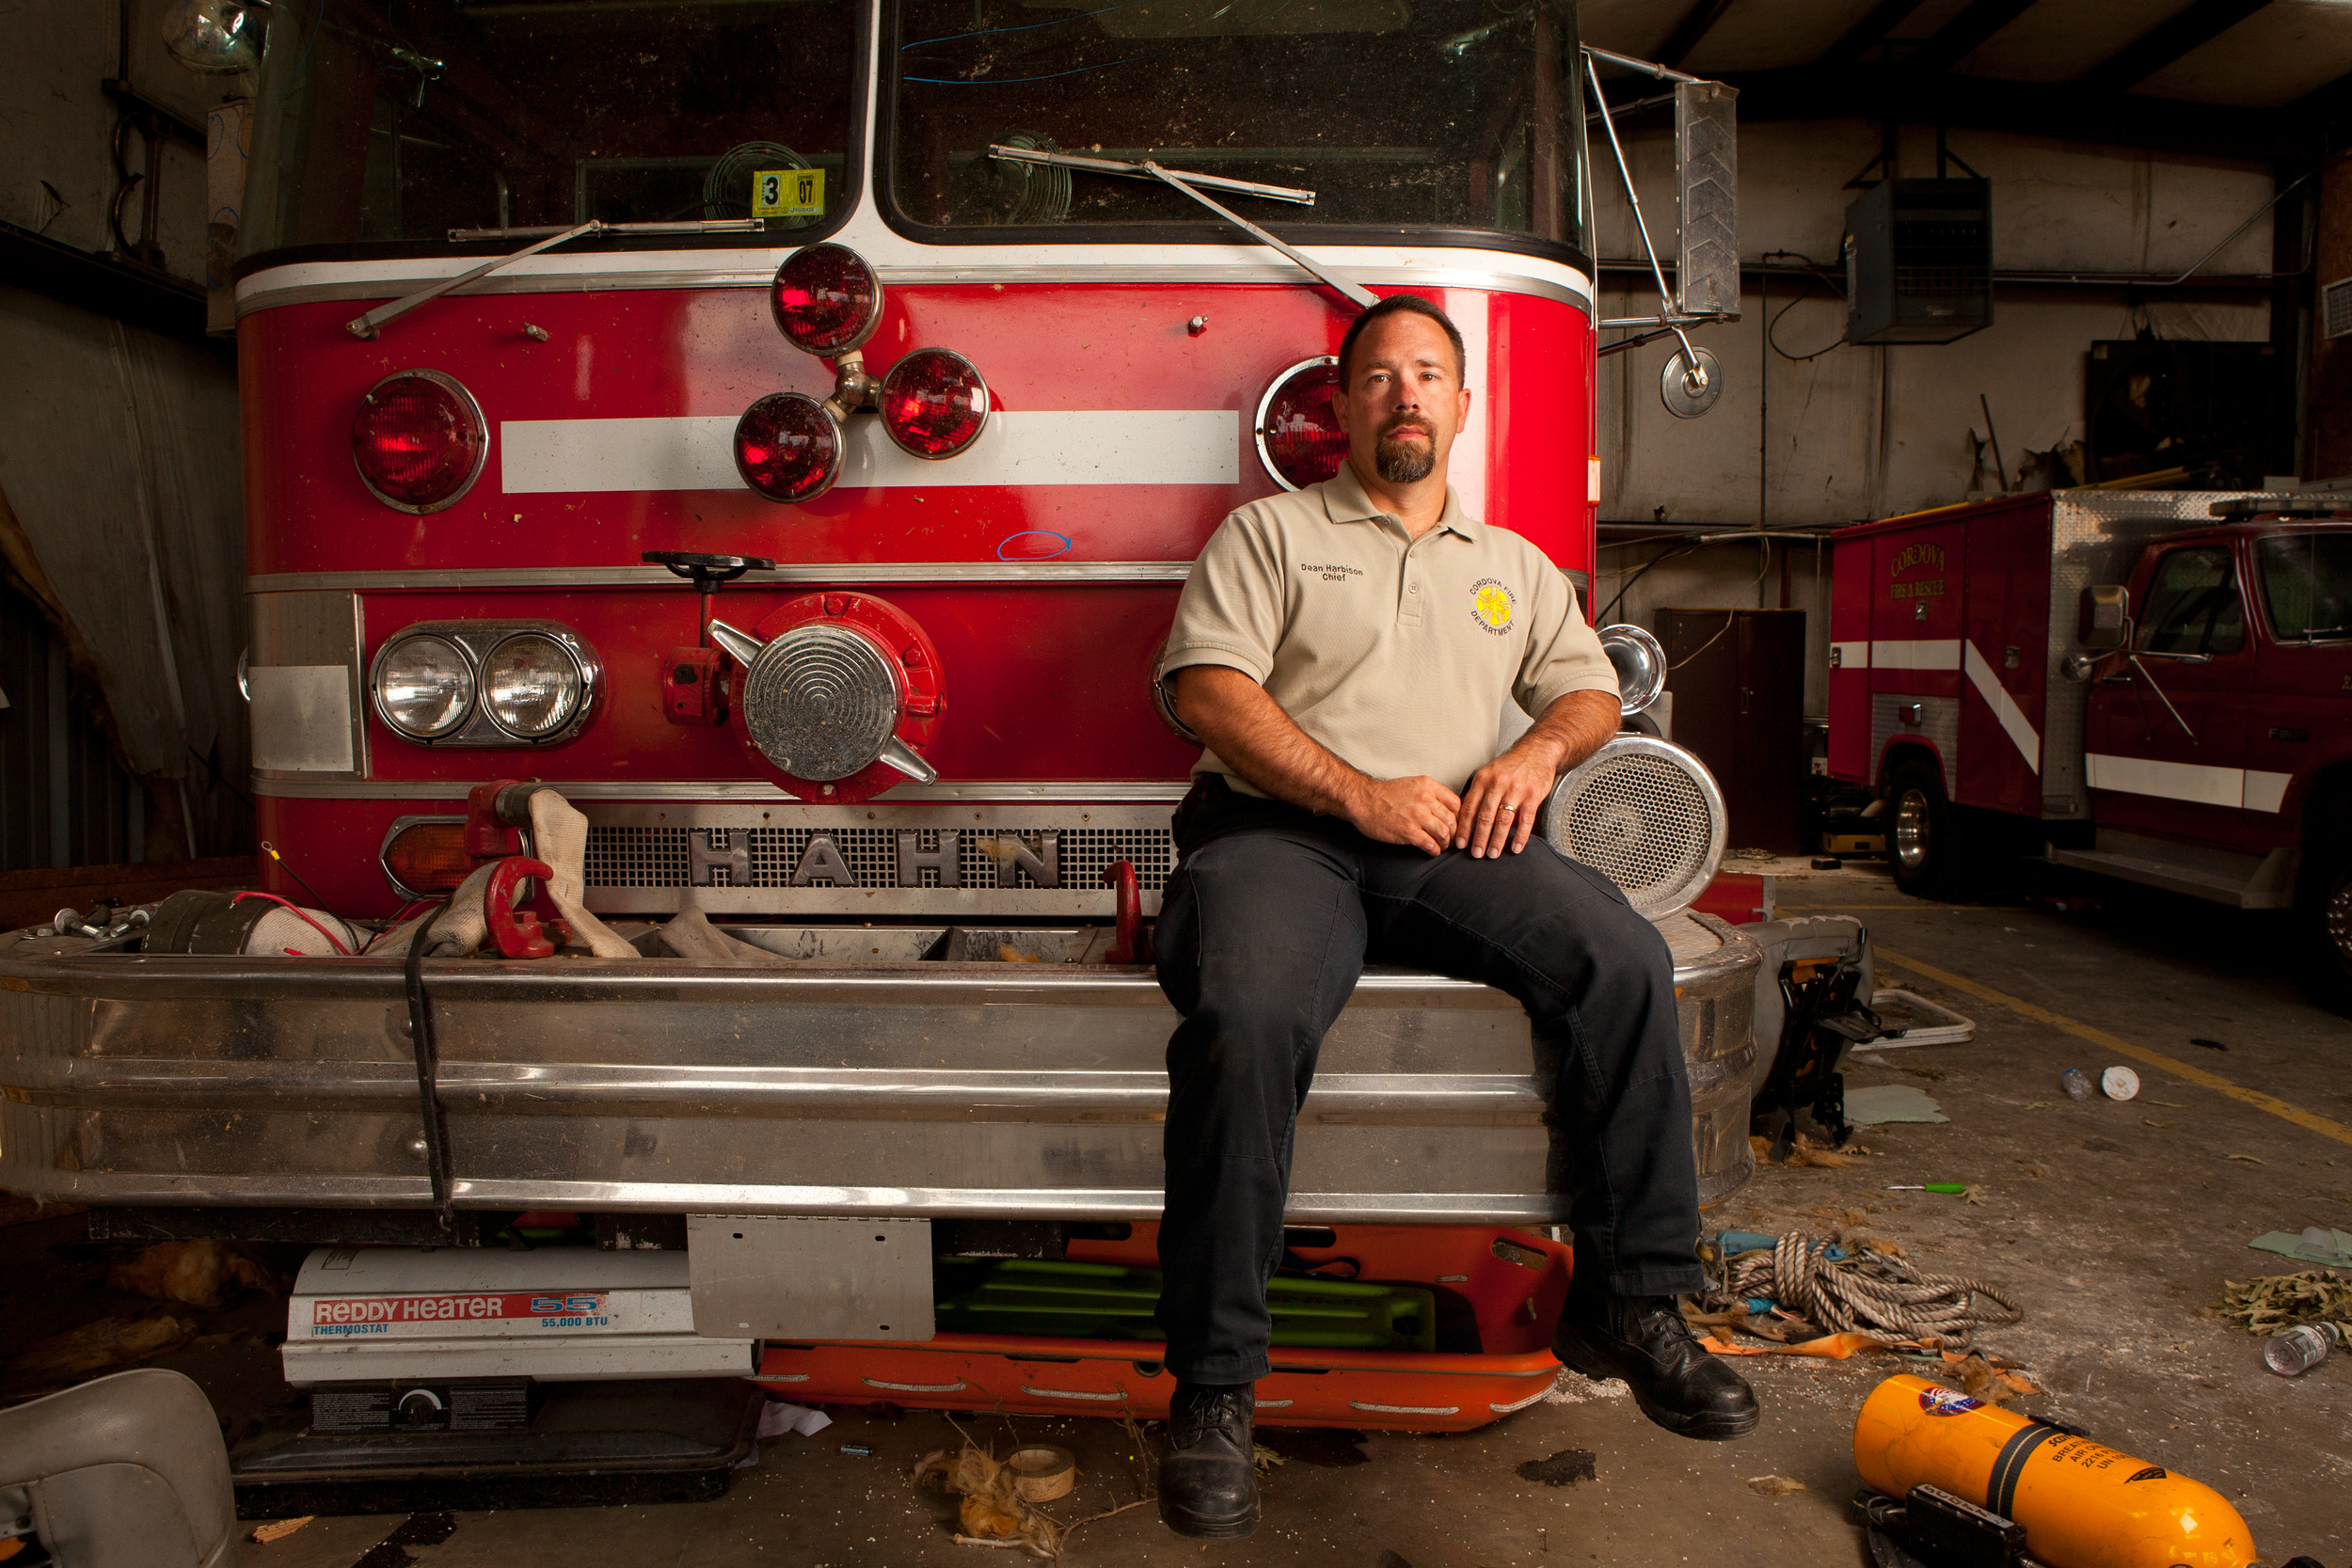 Dean, the Cordova Fire Chief. I'm told that the fire truck on which he is sitting was outside the station but got blown back inside and against the back wall...transmission was destroyed by flying objects and the engine may be totaled.